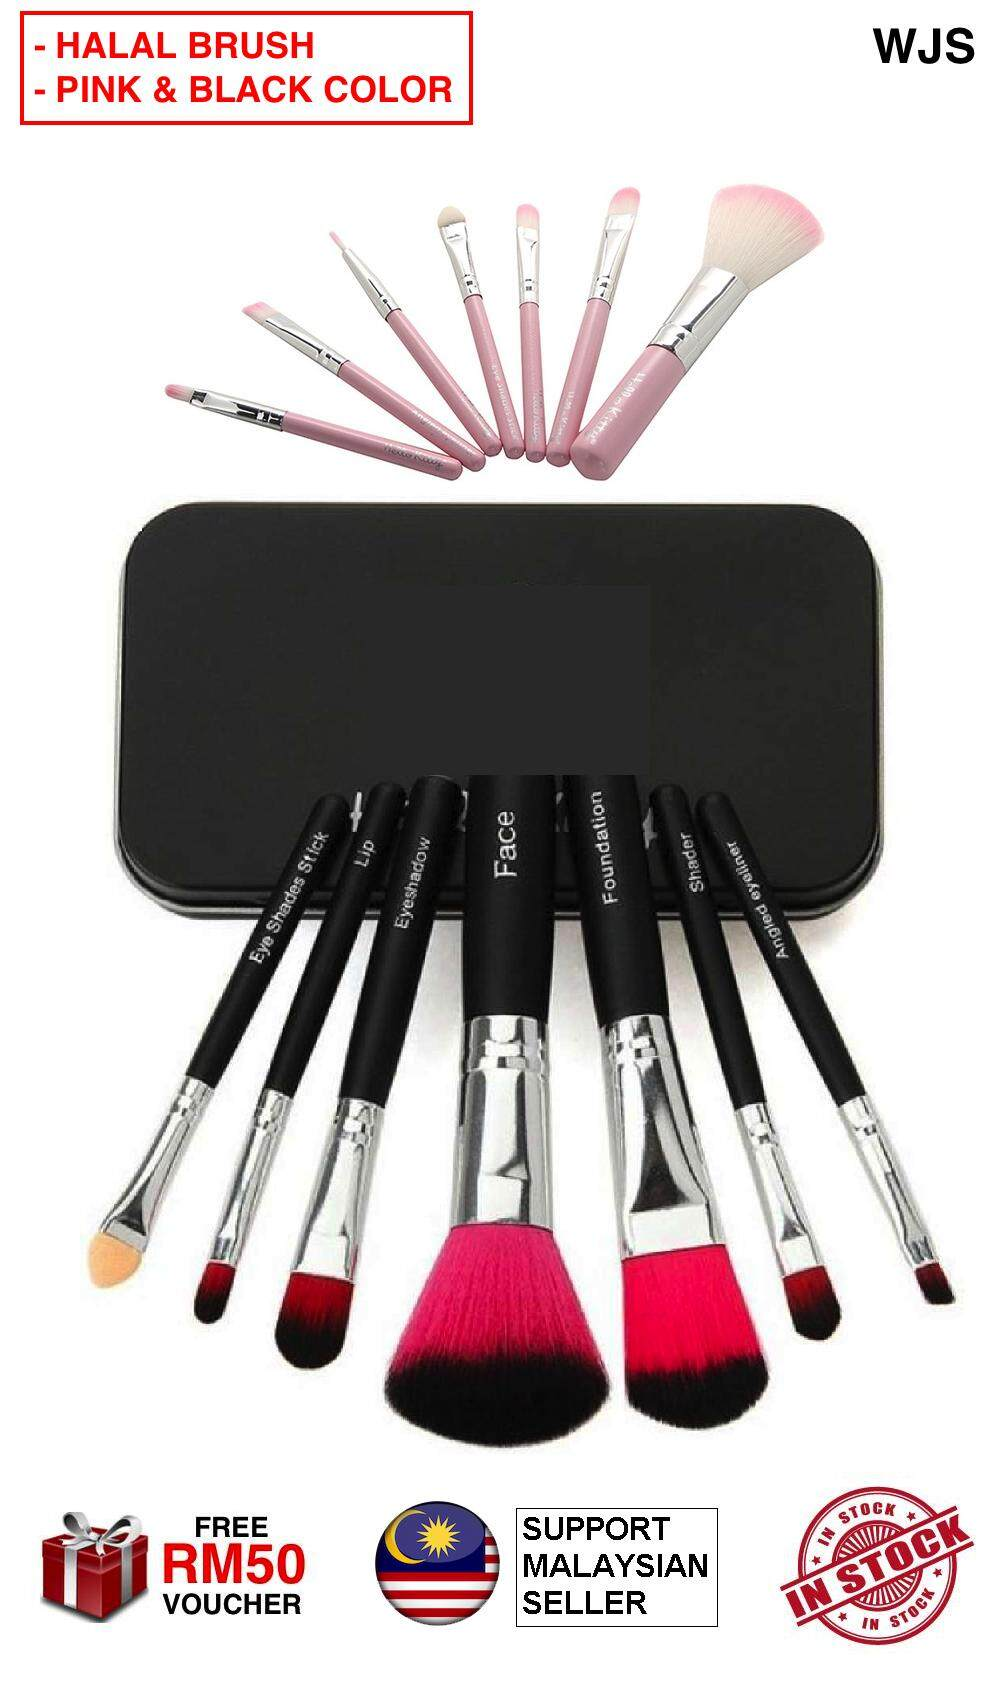 (HALAL BRUSH) WJS 7pcs 7 pcs Make Up Brush H Kitty Brush Kit with Box Make Up Set Make Up Brush Set Travel Makeup Brush Make Up Makeup FREE CONTAINER BOX PINK [FREE RM 50 VOUCHER]